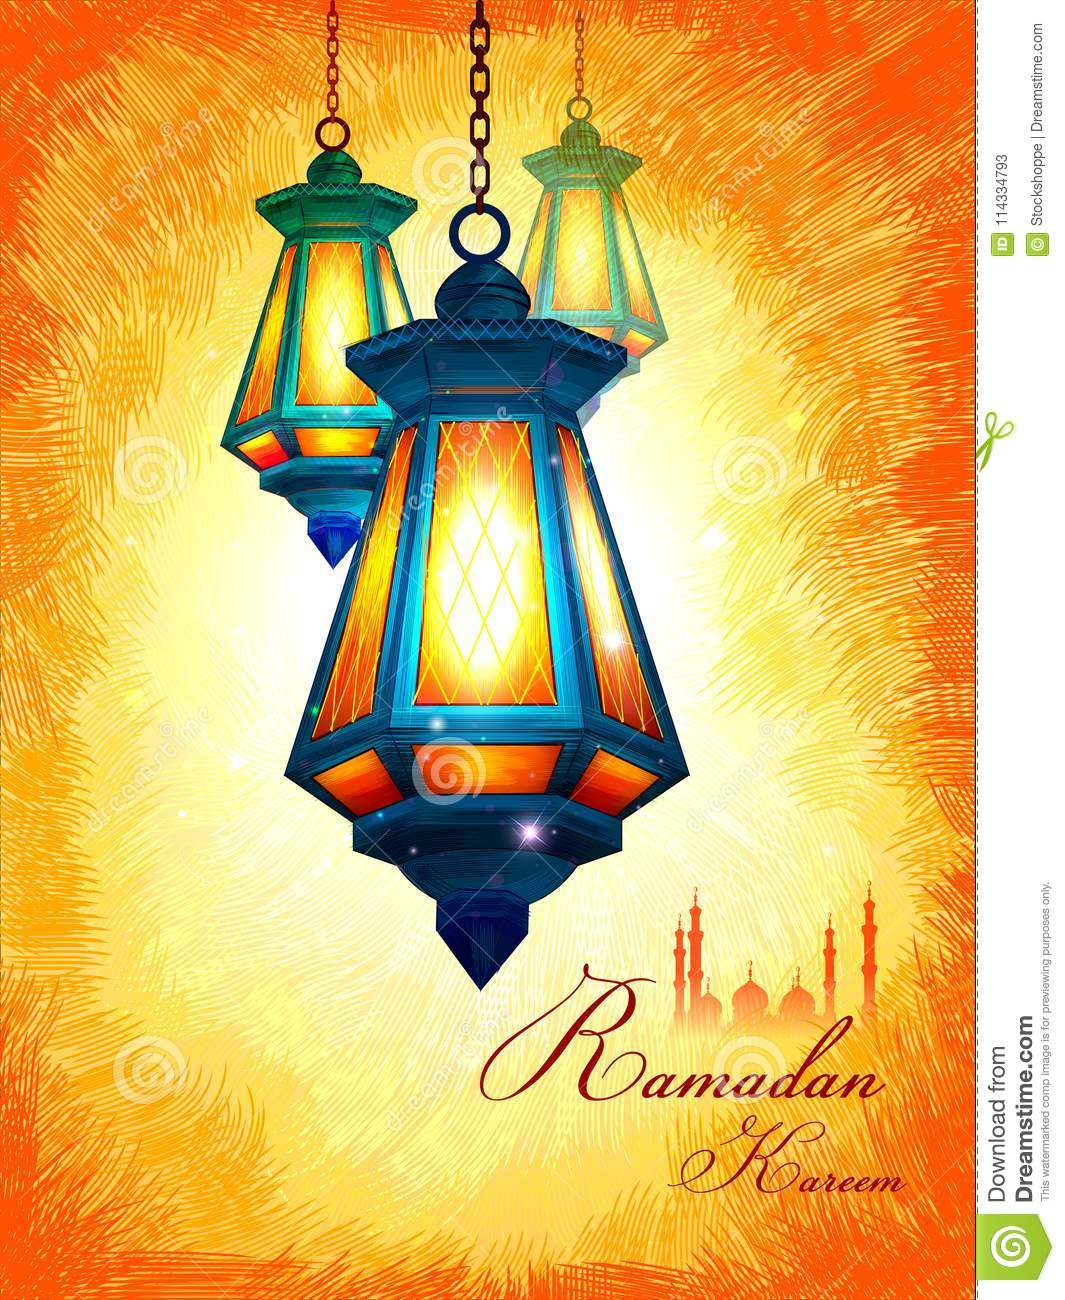 Illuminated lamp for ramadan kareem greetings for ramadan background download illuminated lamp for ramadan kareem greetings for ramadan background with islamic mosque stock vector m4hsunfo